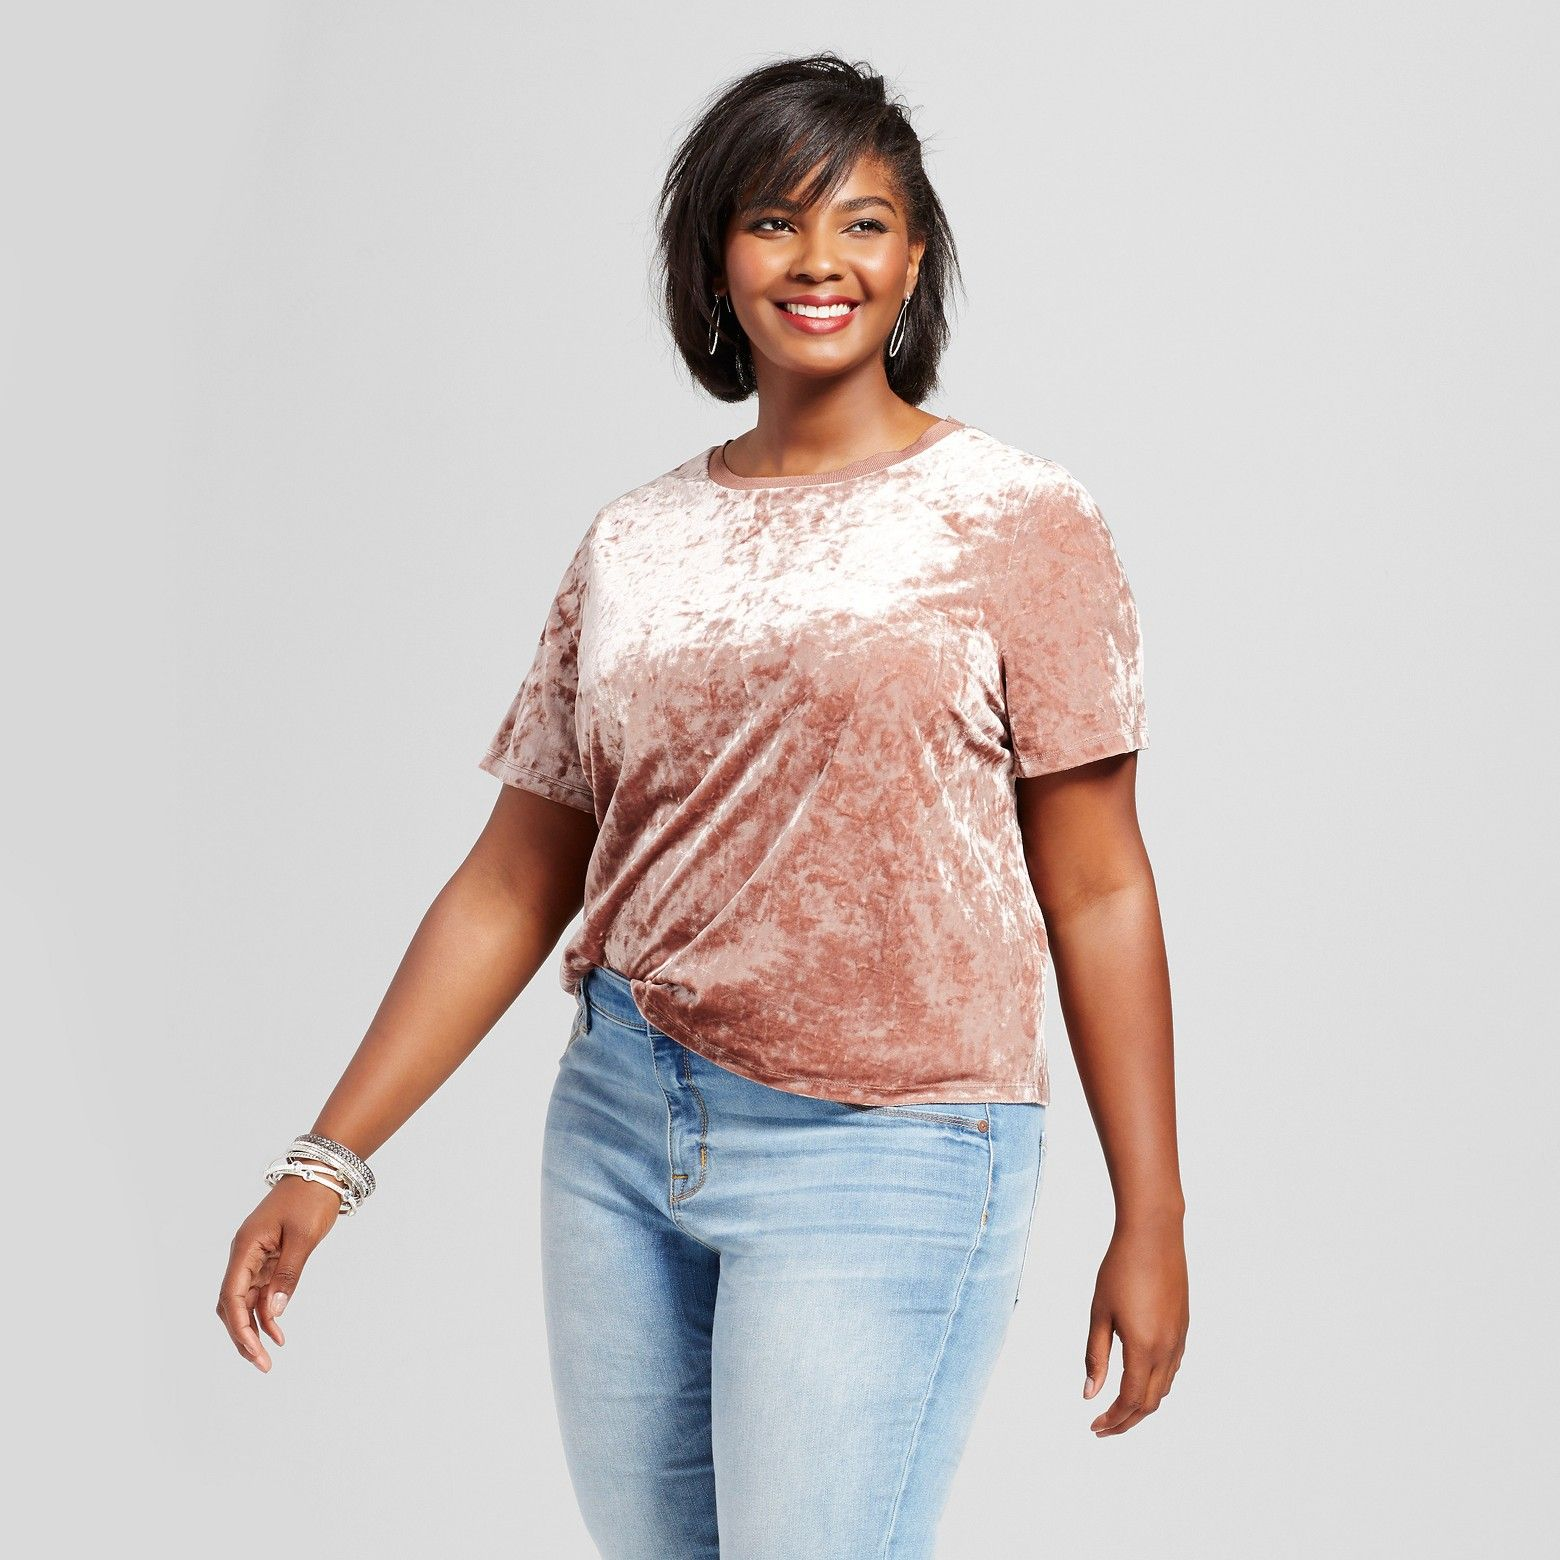 Give your wardrobe some glitz and glamour with this Crushed Velvet T-Shirt from Ava & Viv™. You'll prove there's no limit to your daring style when you wear this trendy tee and shimmer in the light. Soft and comfortable with a retro crushed velvet vibe, it's fun to mix and match with distressed skinny jeans or with a skirt and some heels for a more dressed up look.